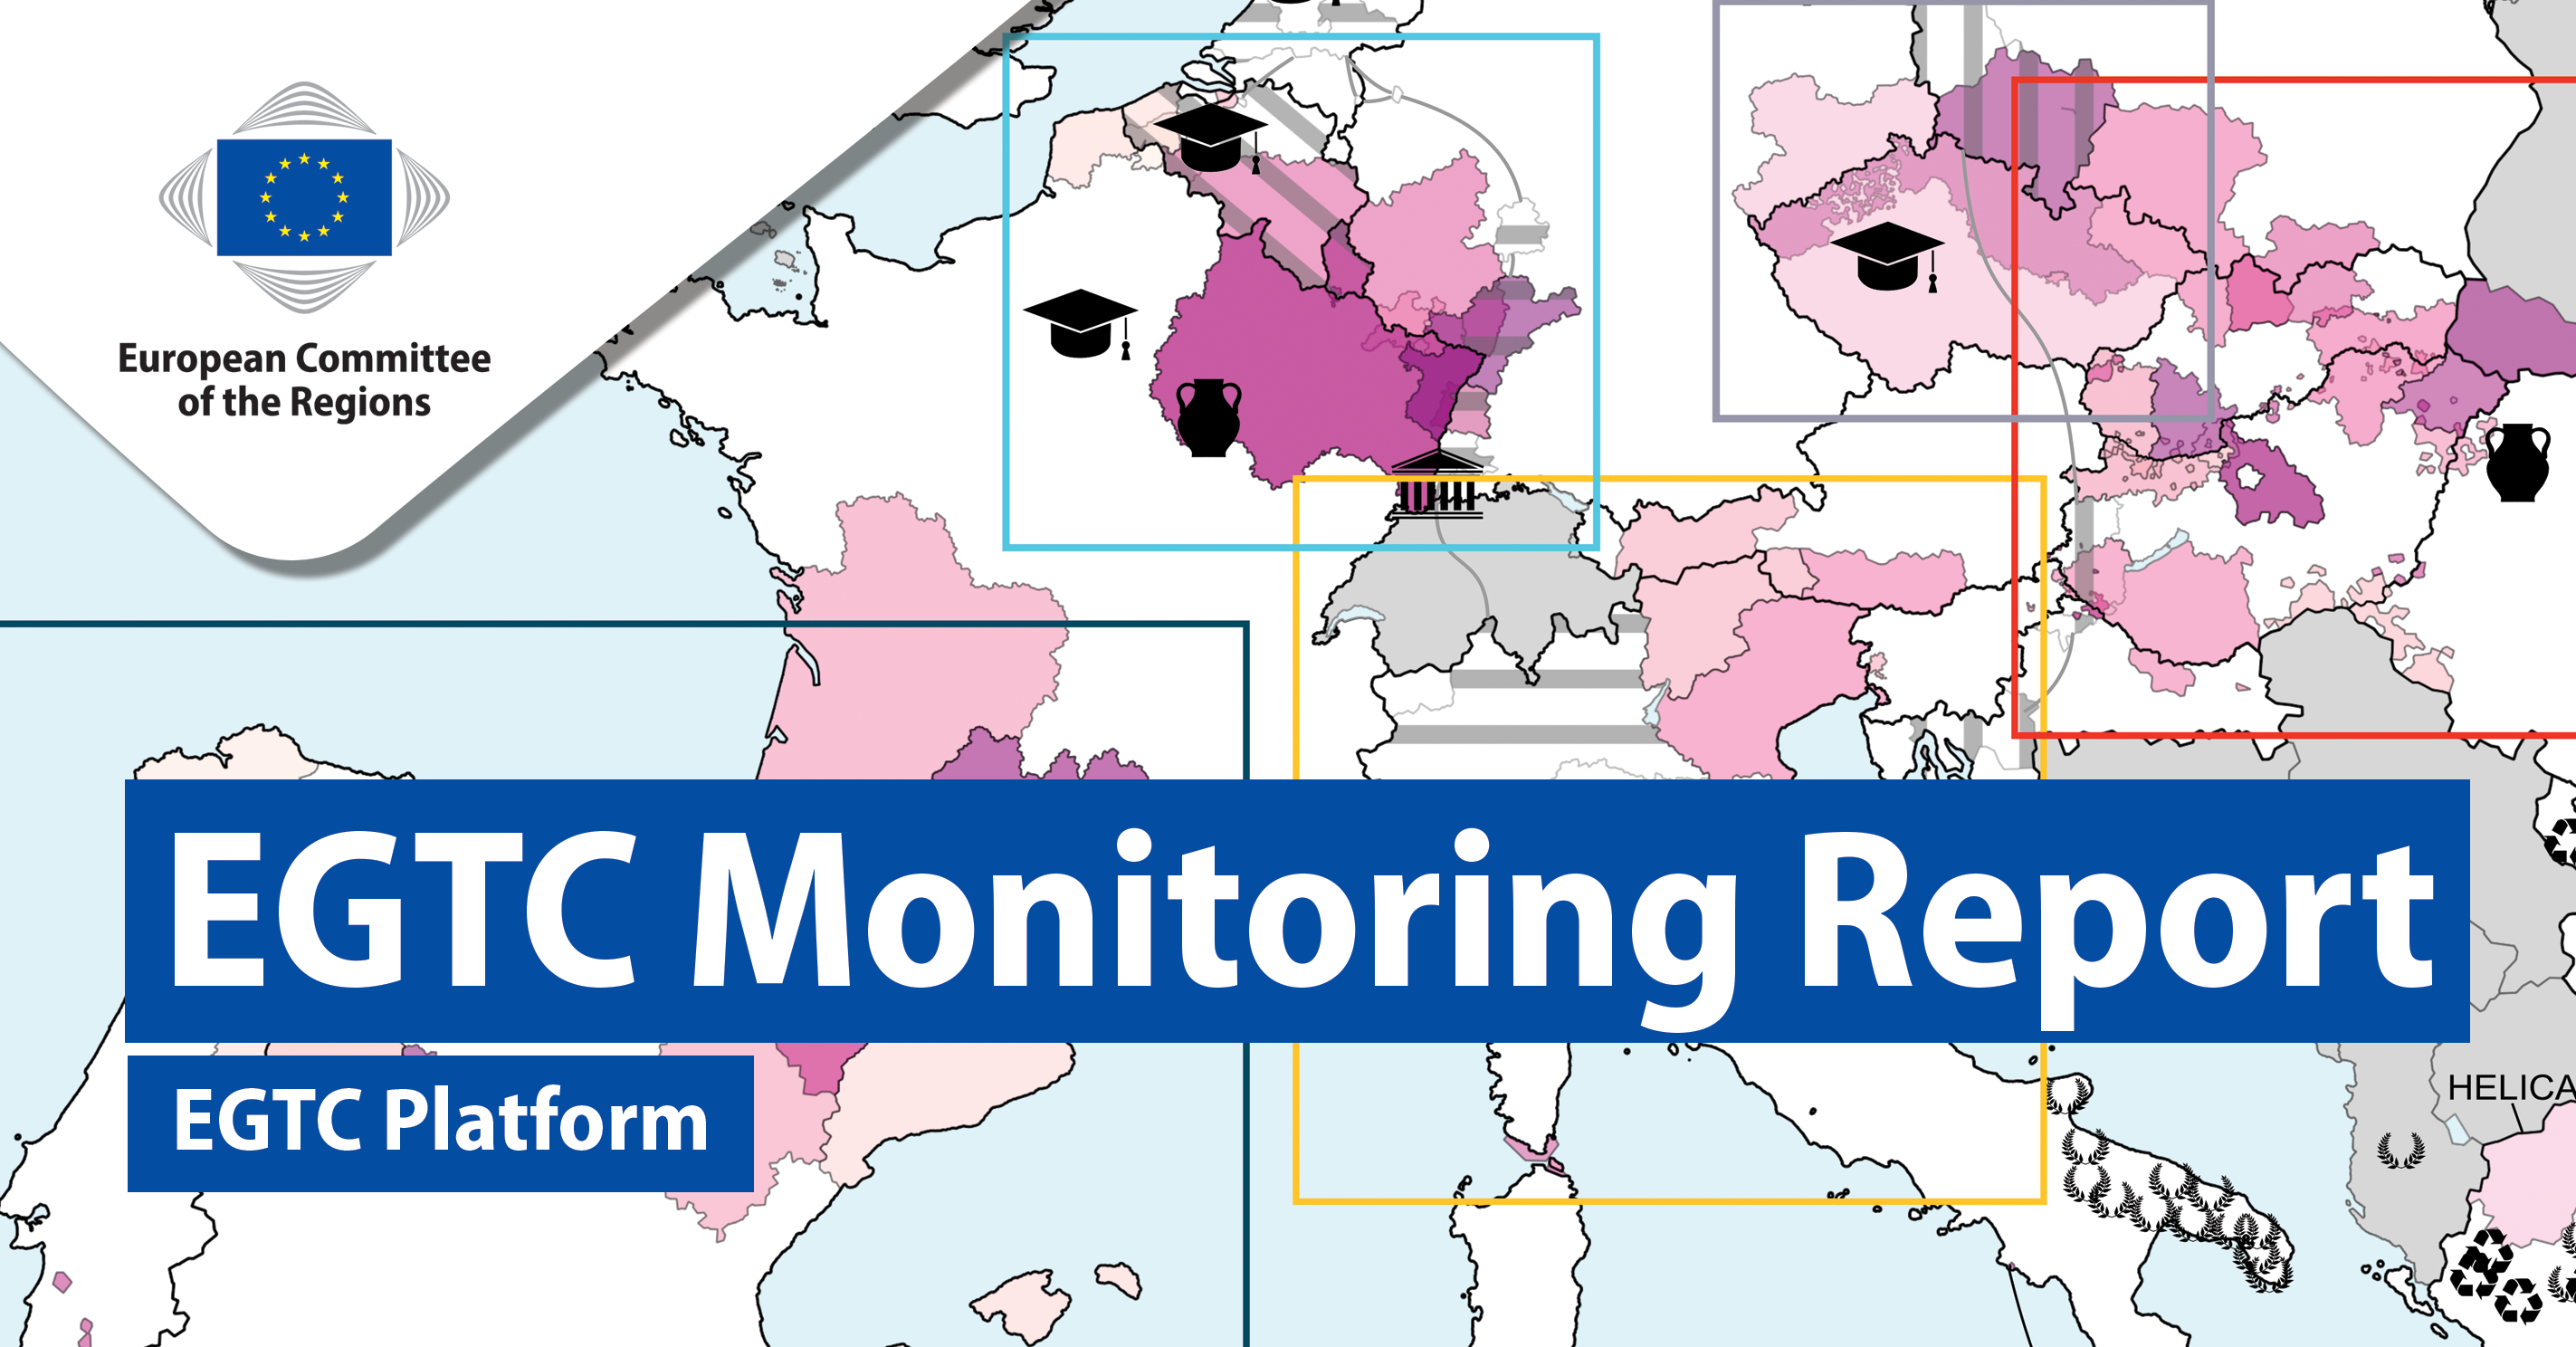 EGTC Monitoring Report 2017 just published